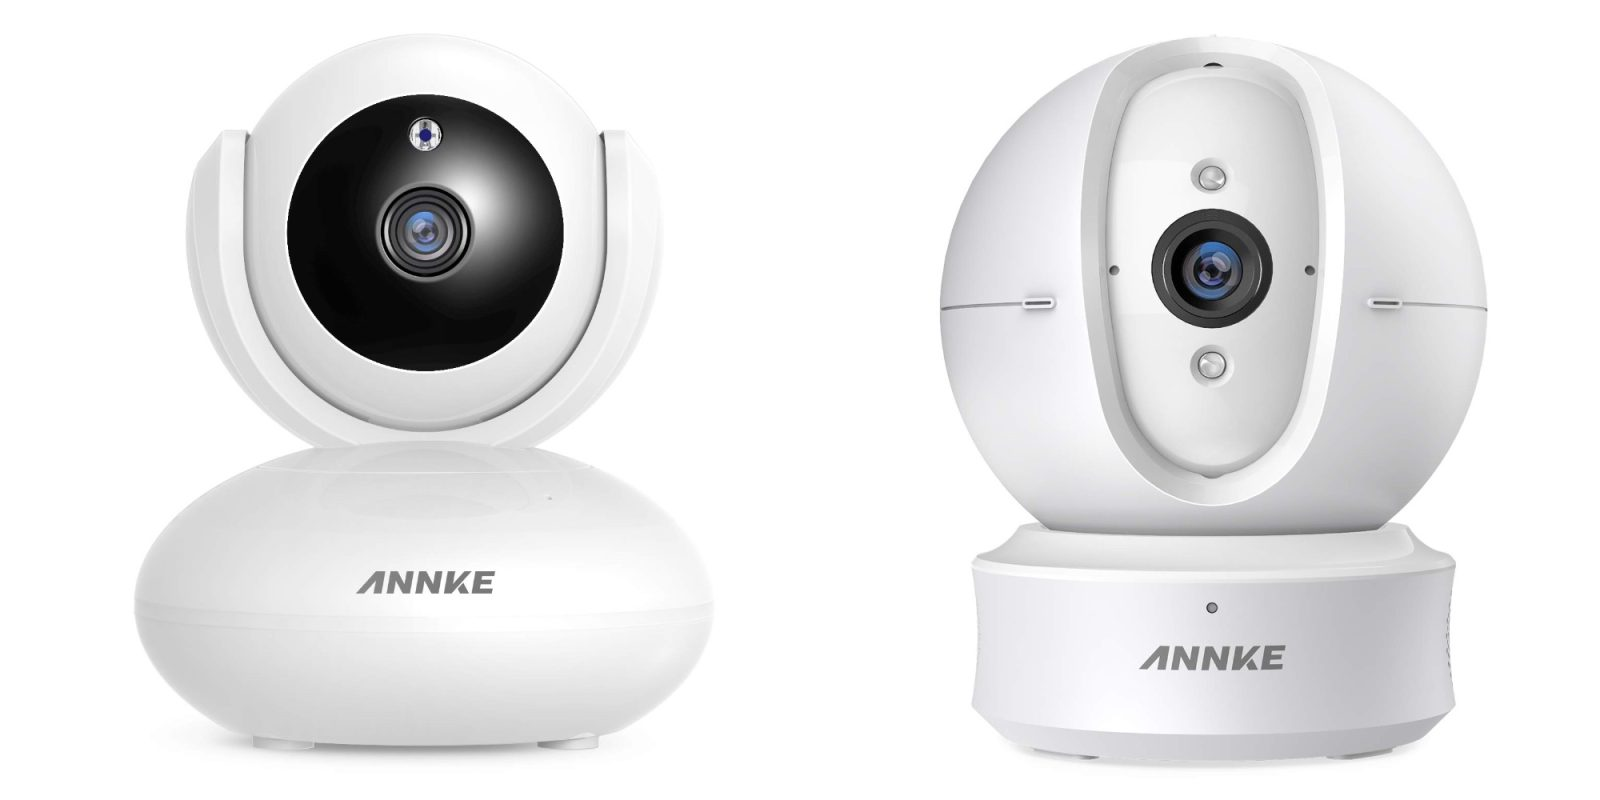 Take 33% off ANNKE's 1080p Pan/Tilt Smart Home Security Camera at $30 + more